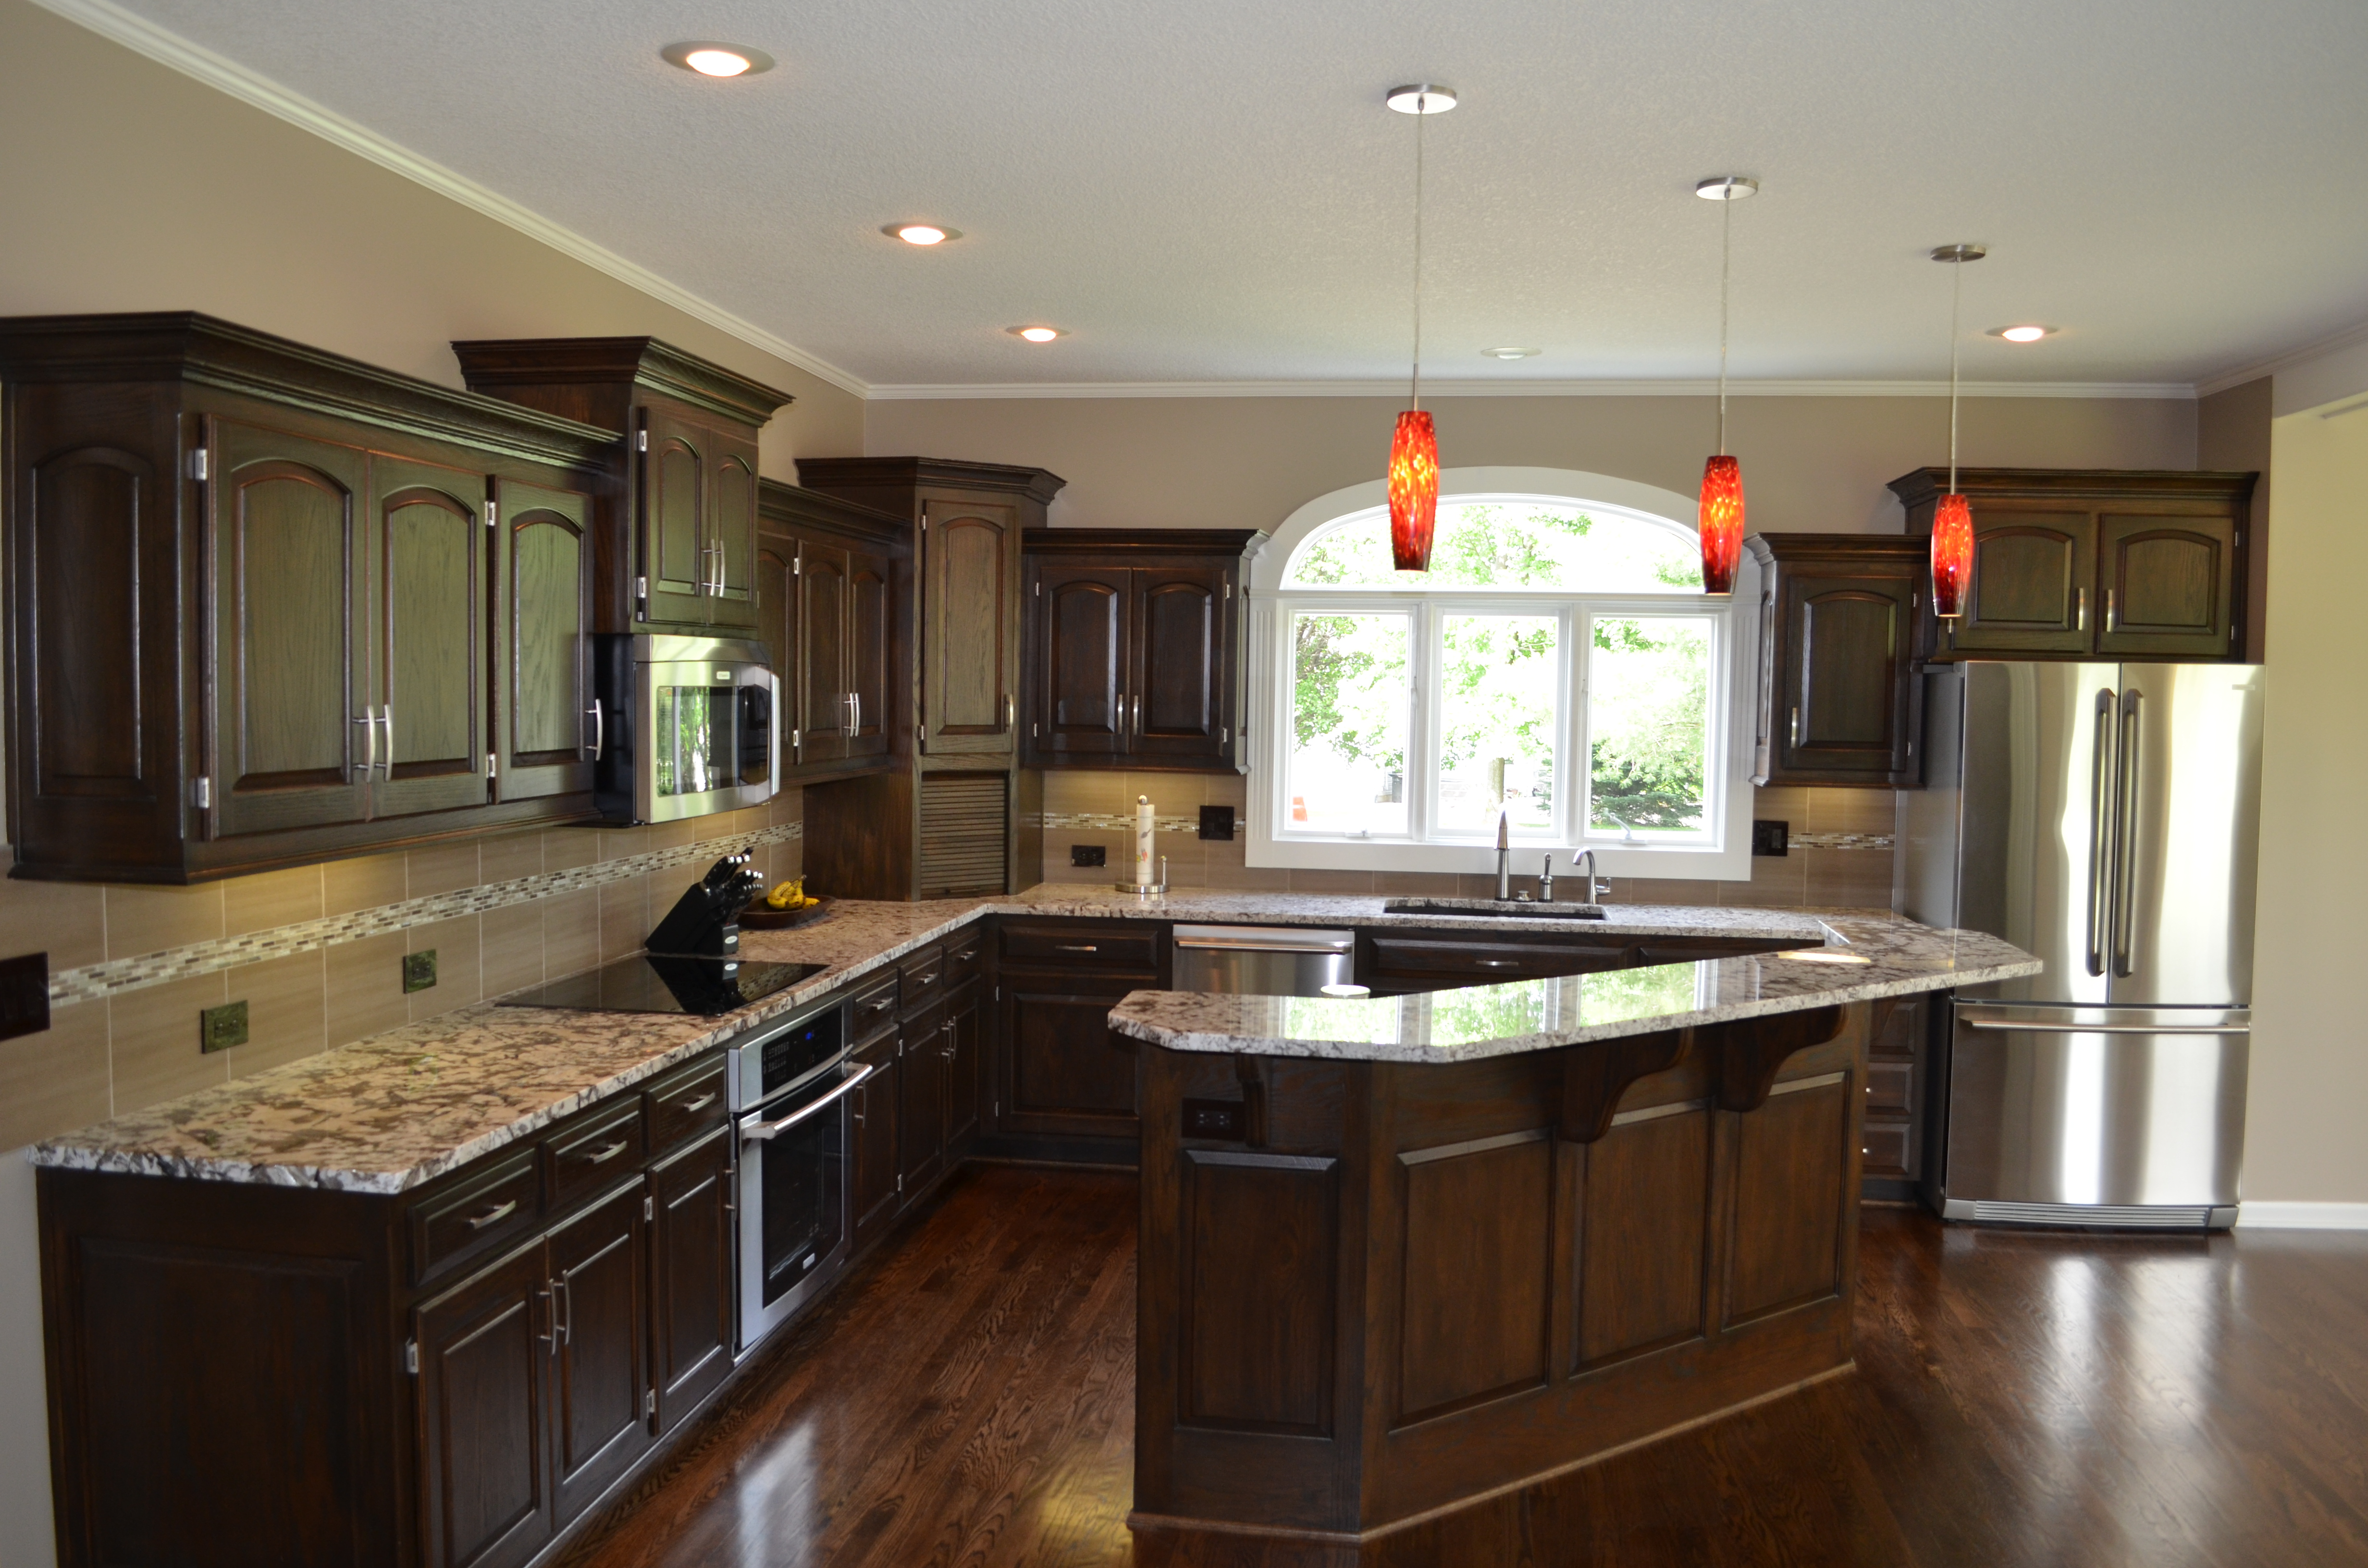 kitchen remodeling kitchen design kansas cityremodeling ForKitchen And Remodeling